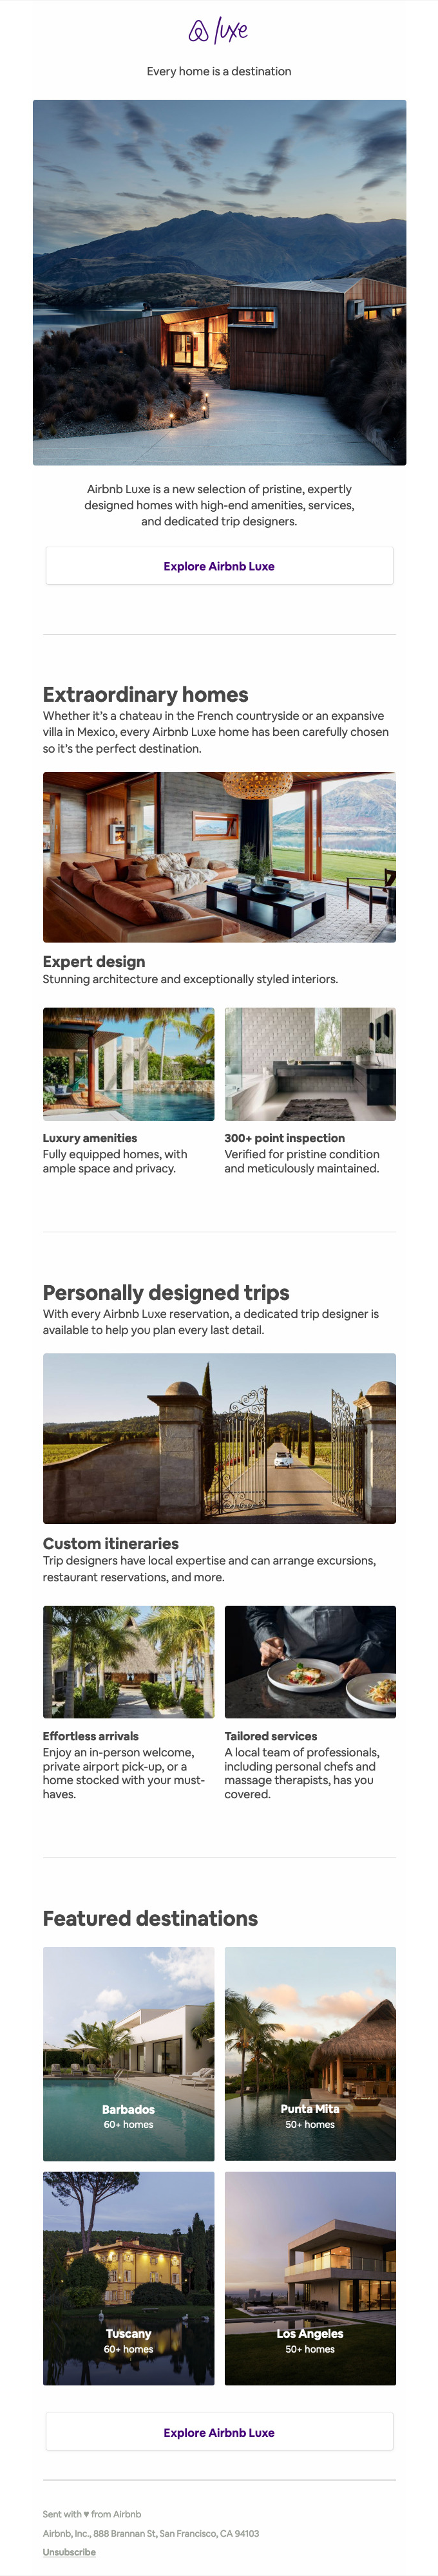 Introducing Airbnb Luxe